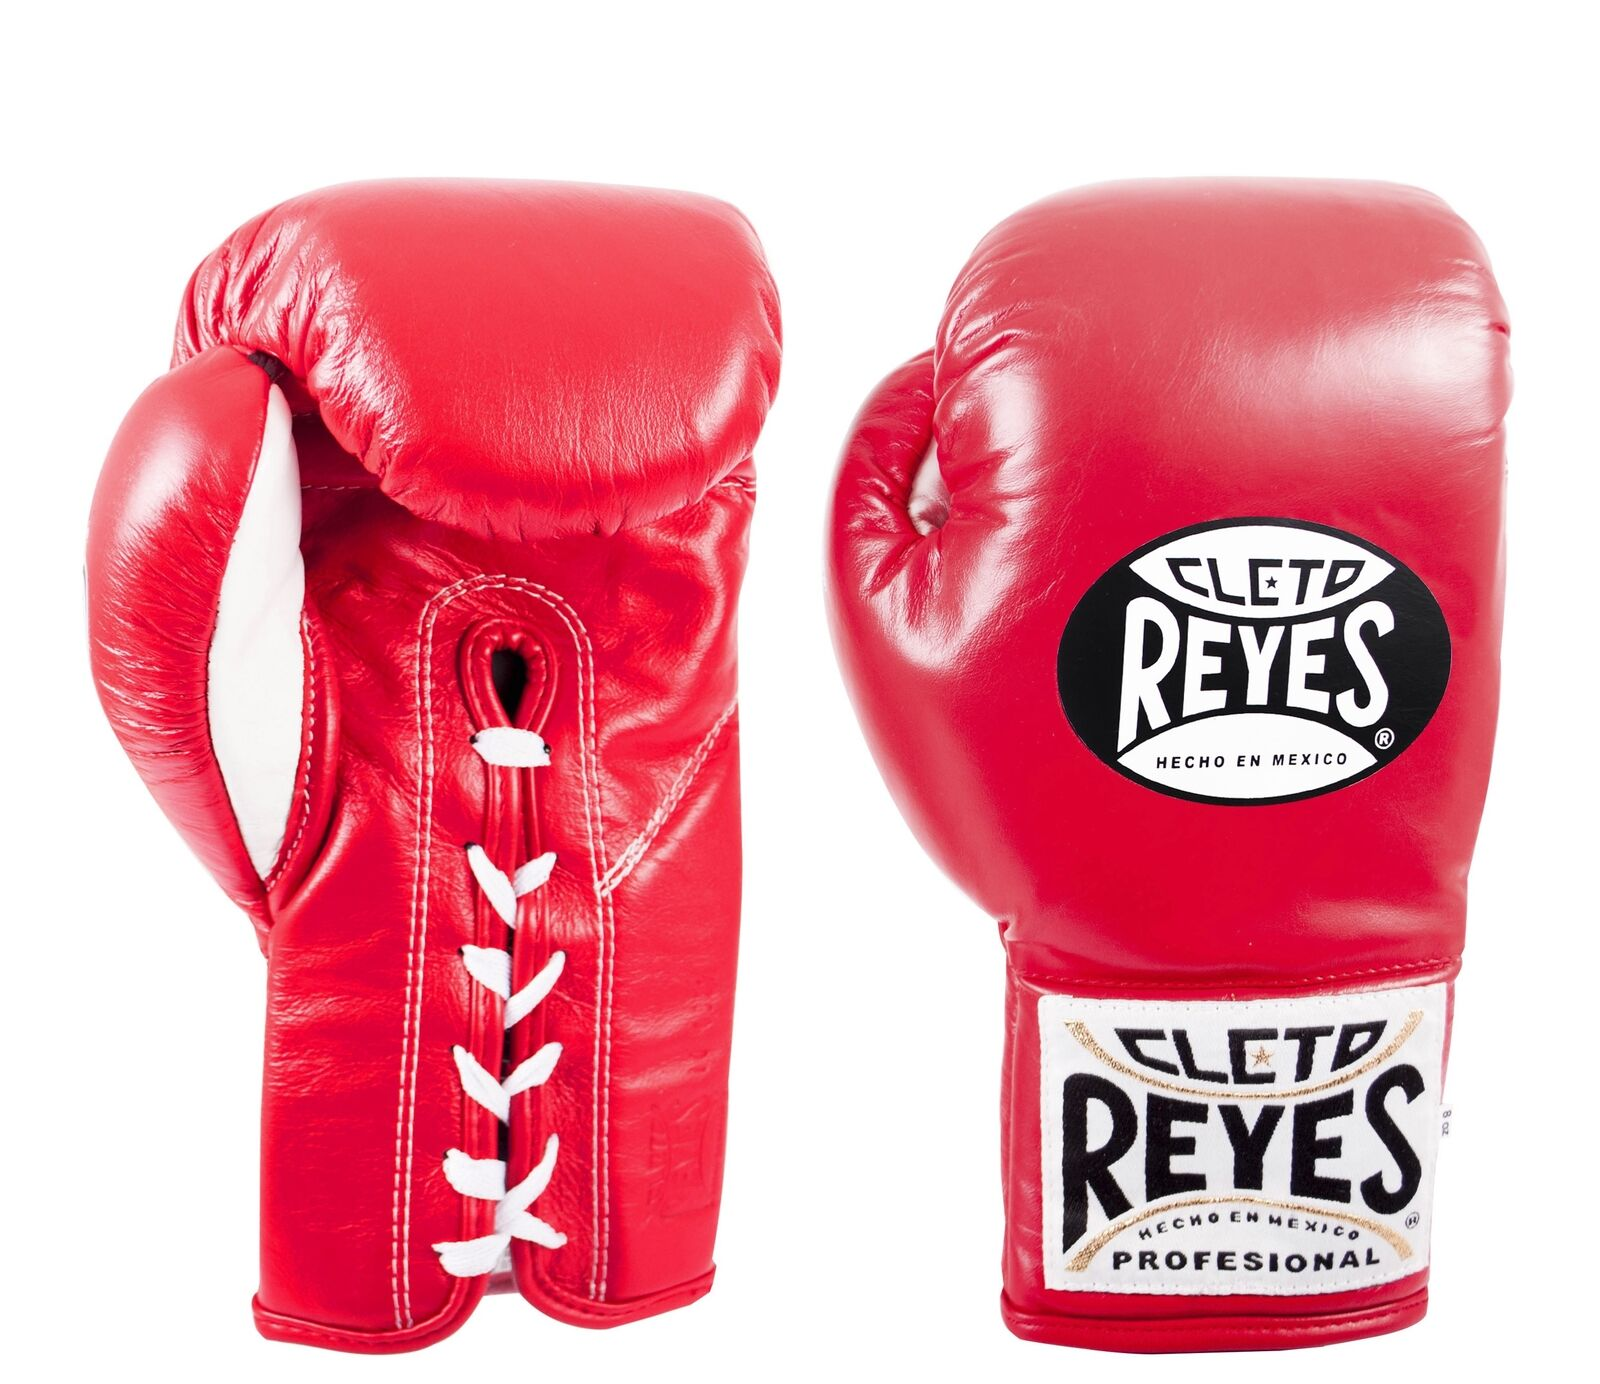 Cleto Reyes Safetec Professionell Professionell Safetec Training Boxhandschuhe - Rot 9affa5